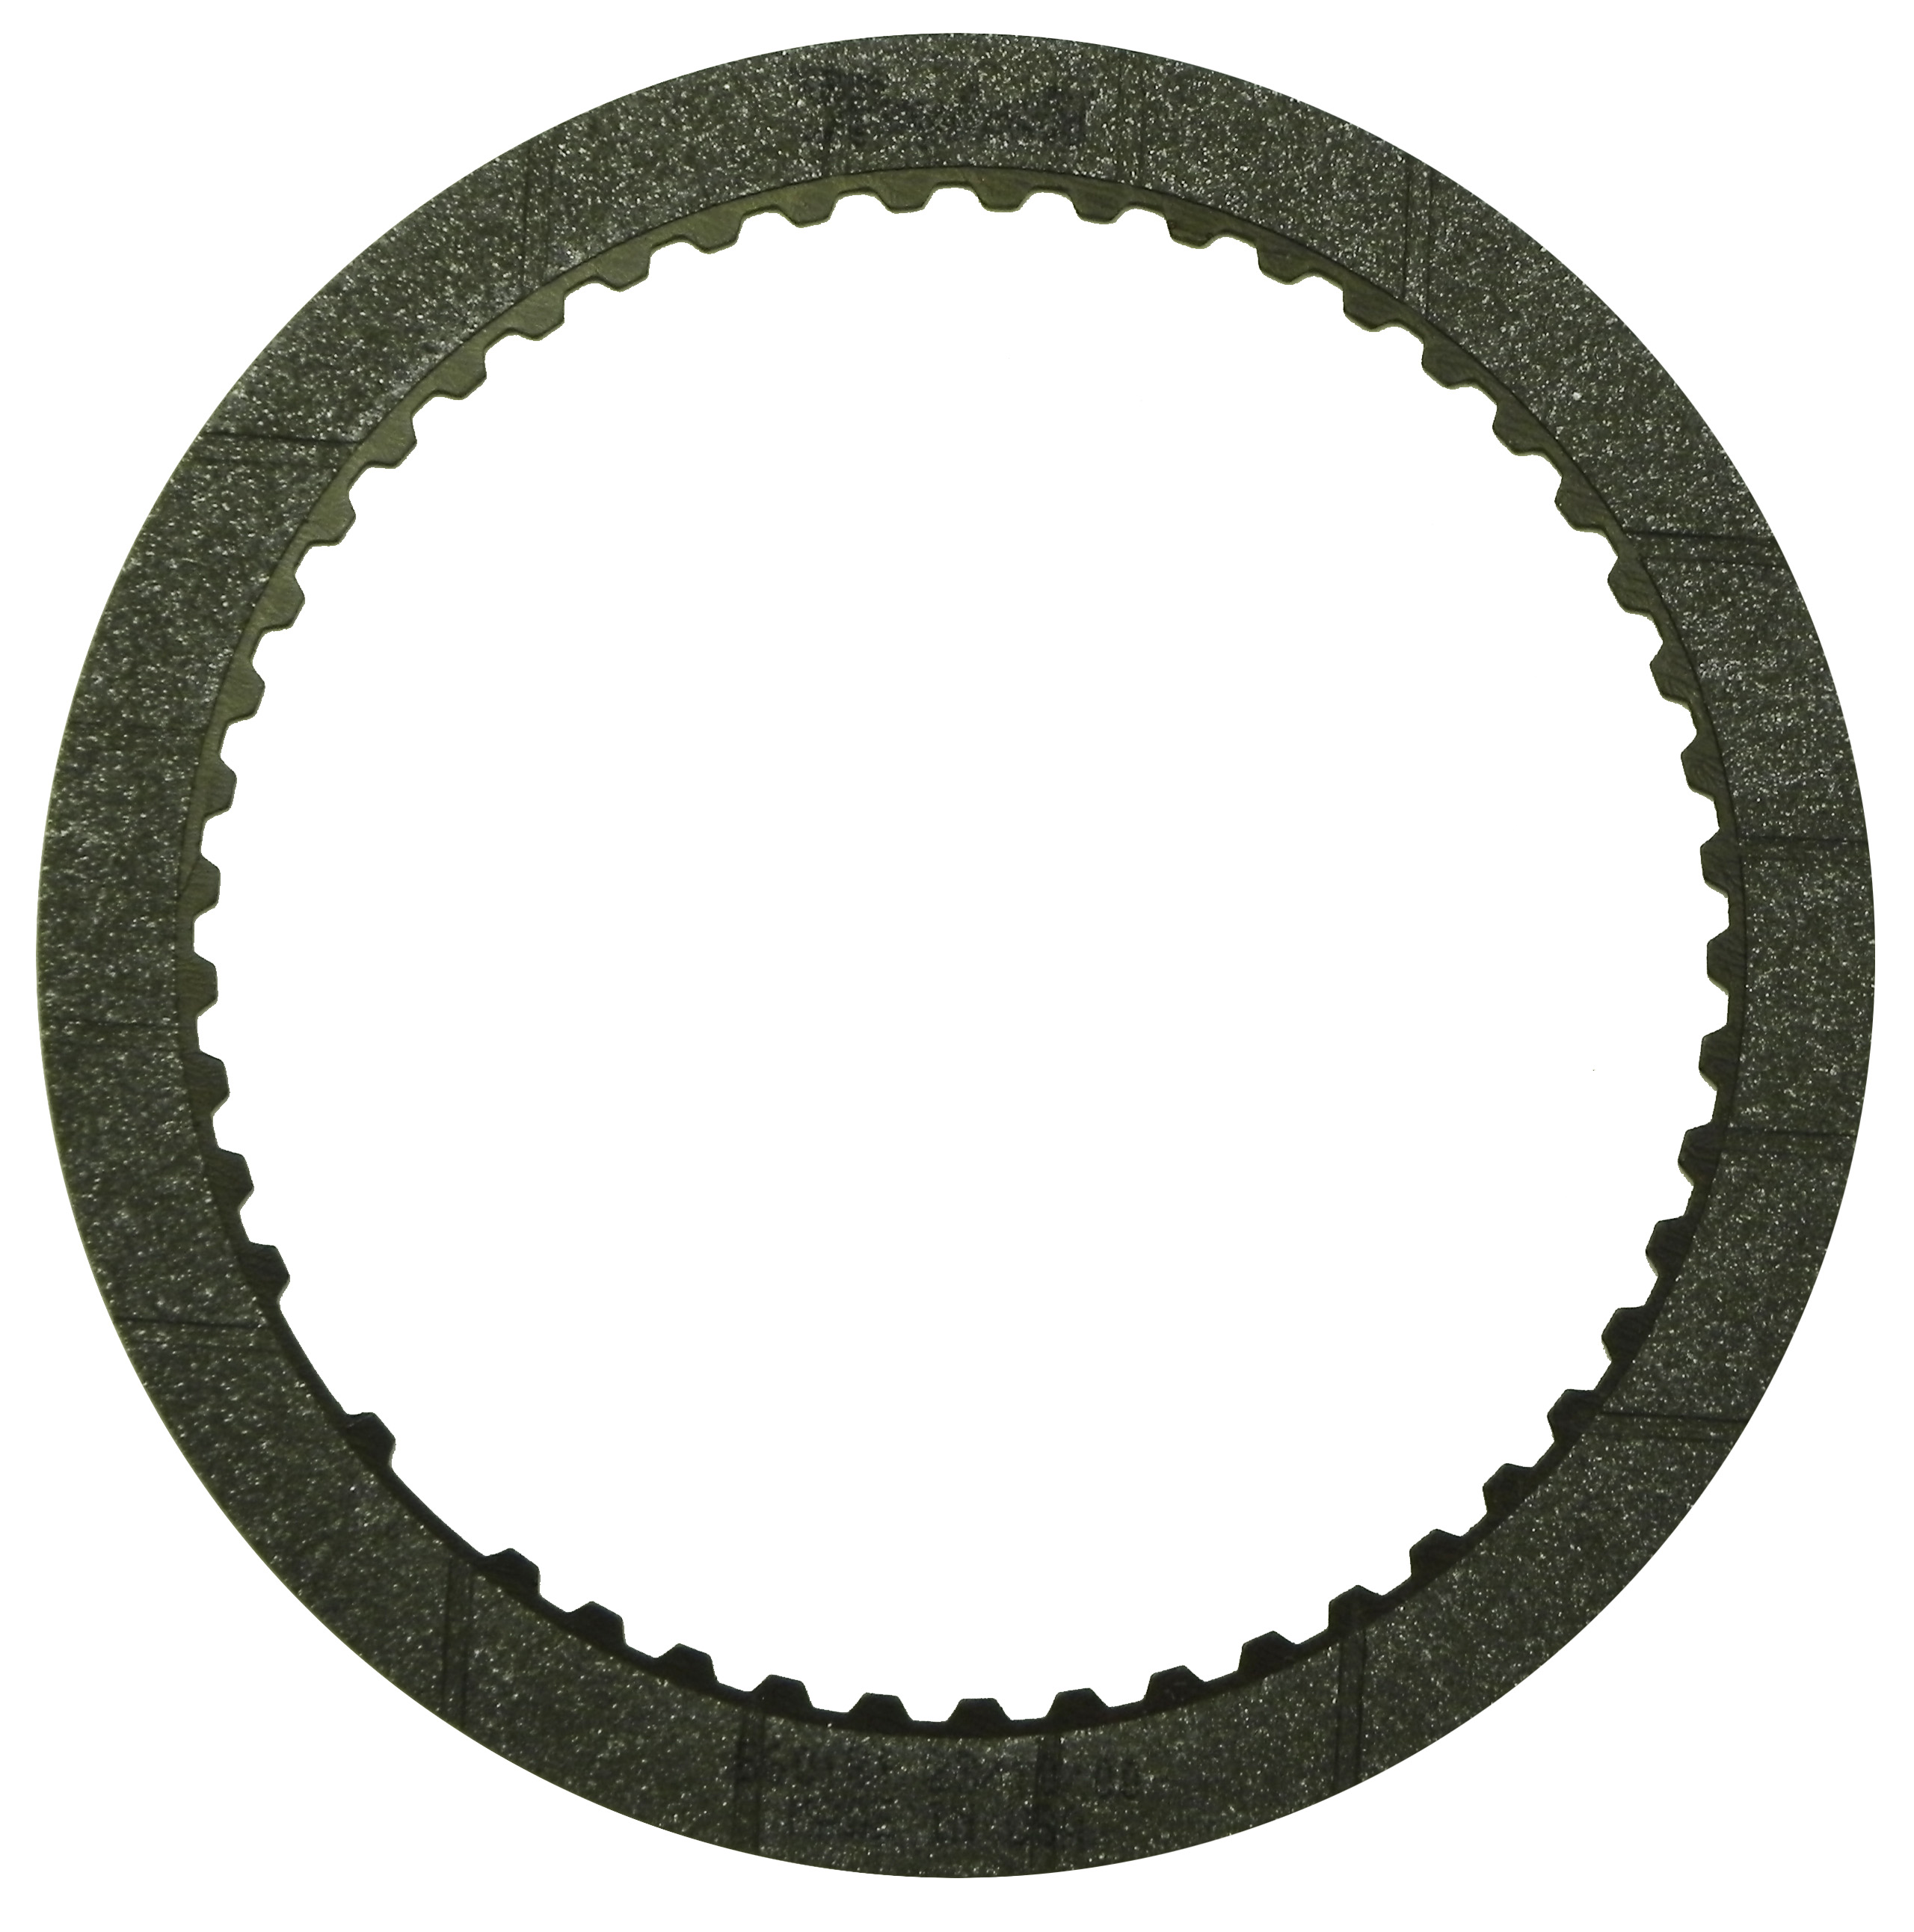 R560181 | 1979-1993 Friction Clutch Plate Graphitic Forward Graphitic (Gas Engine Only)